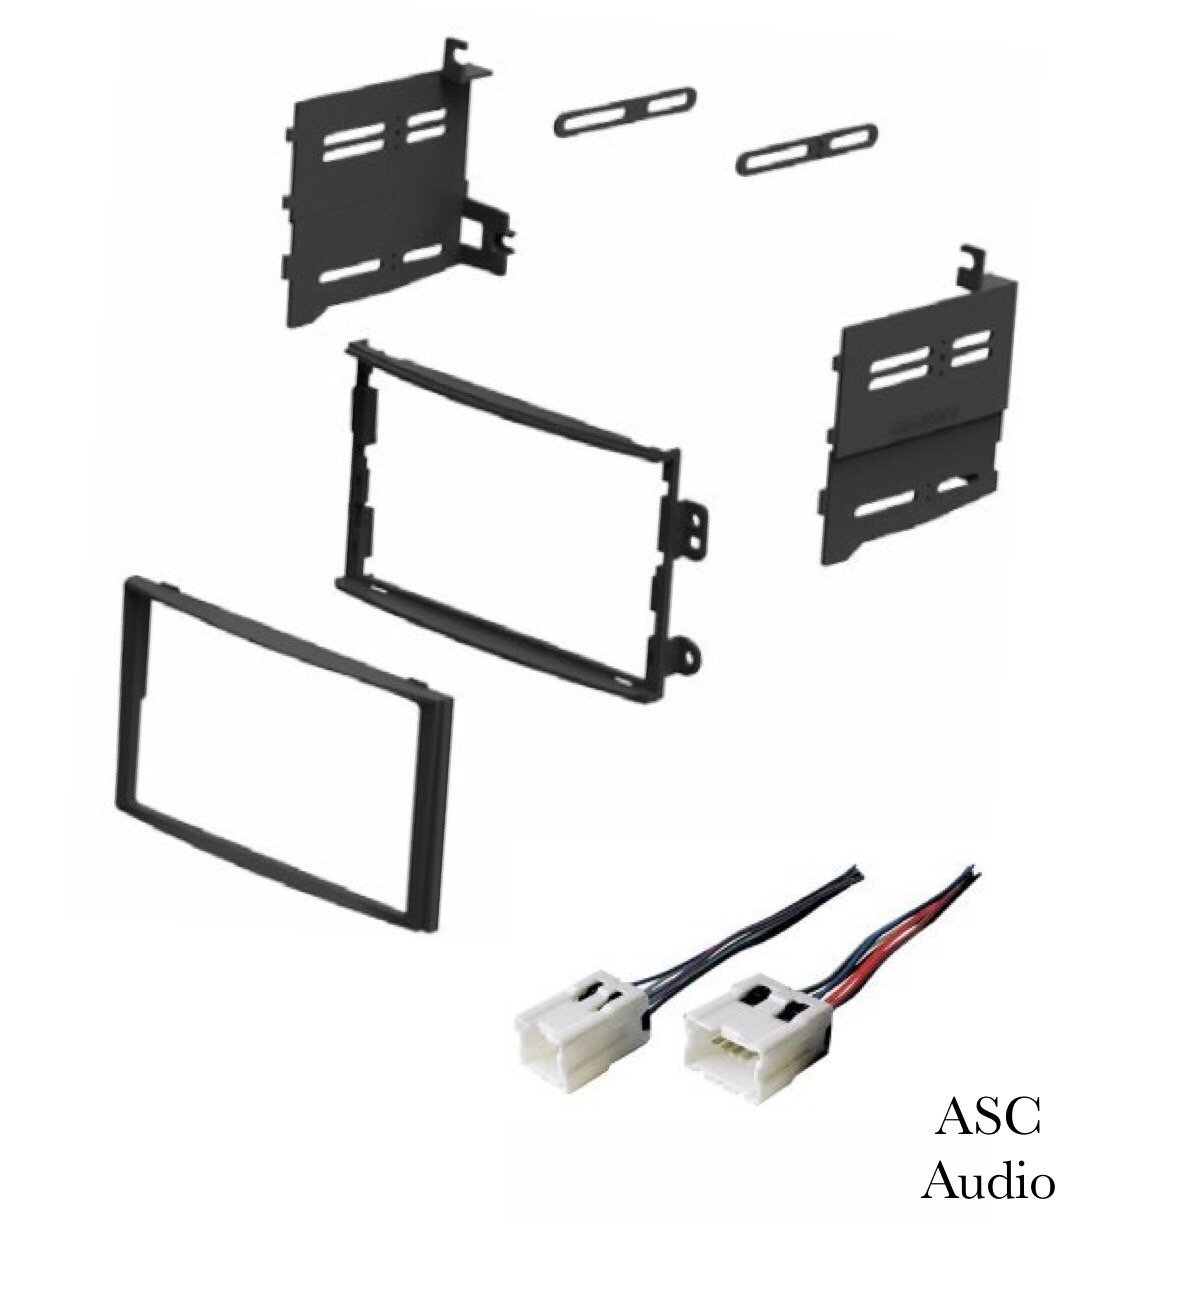 ASC Audio ASC Car Stereo Dash Install Kit and Wire Harness for Installing a Double Din Aftermarket Radio for 2003 2004 2005 Nissan 350z